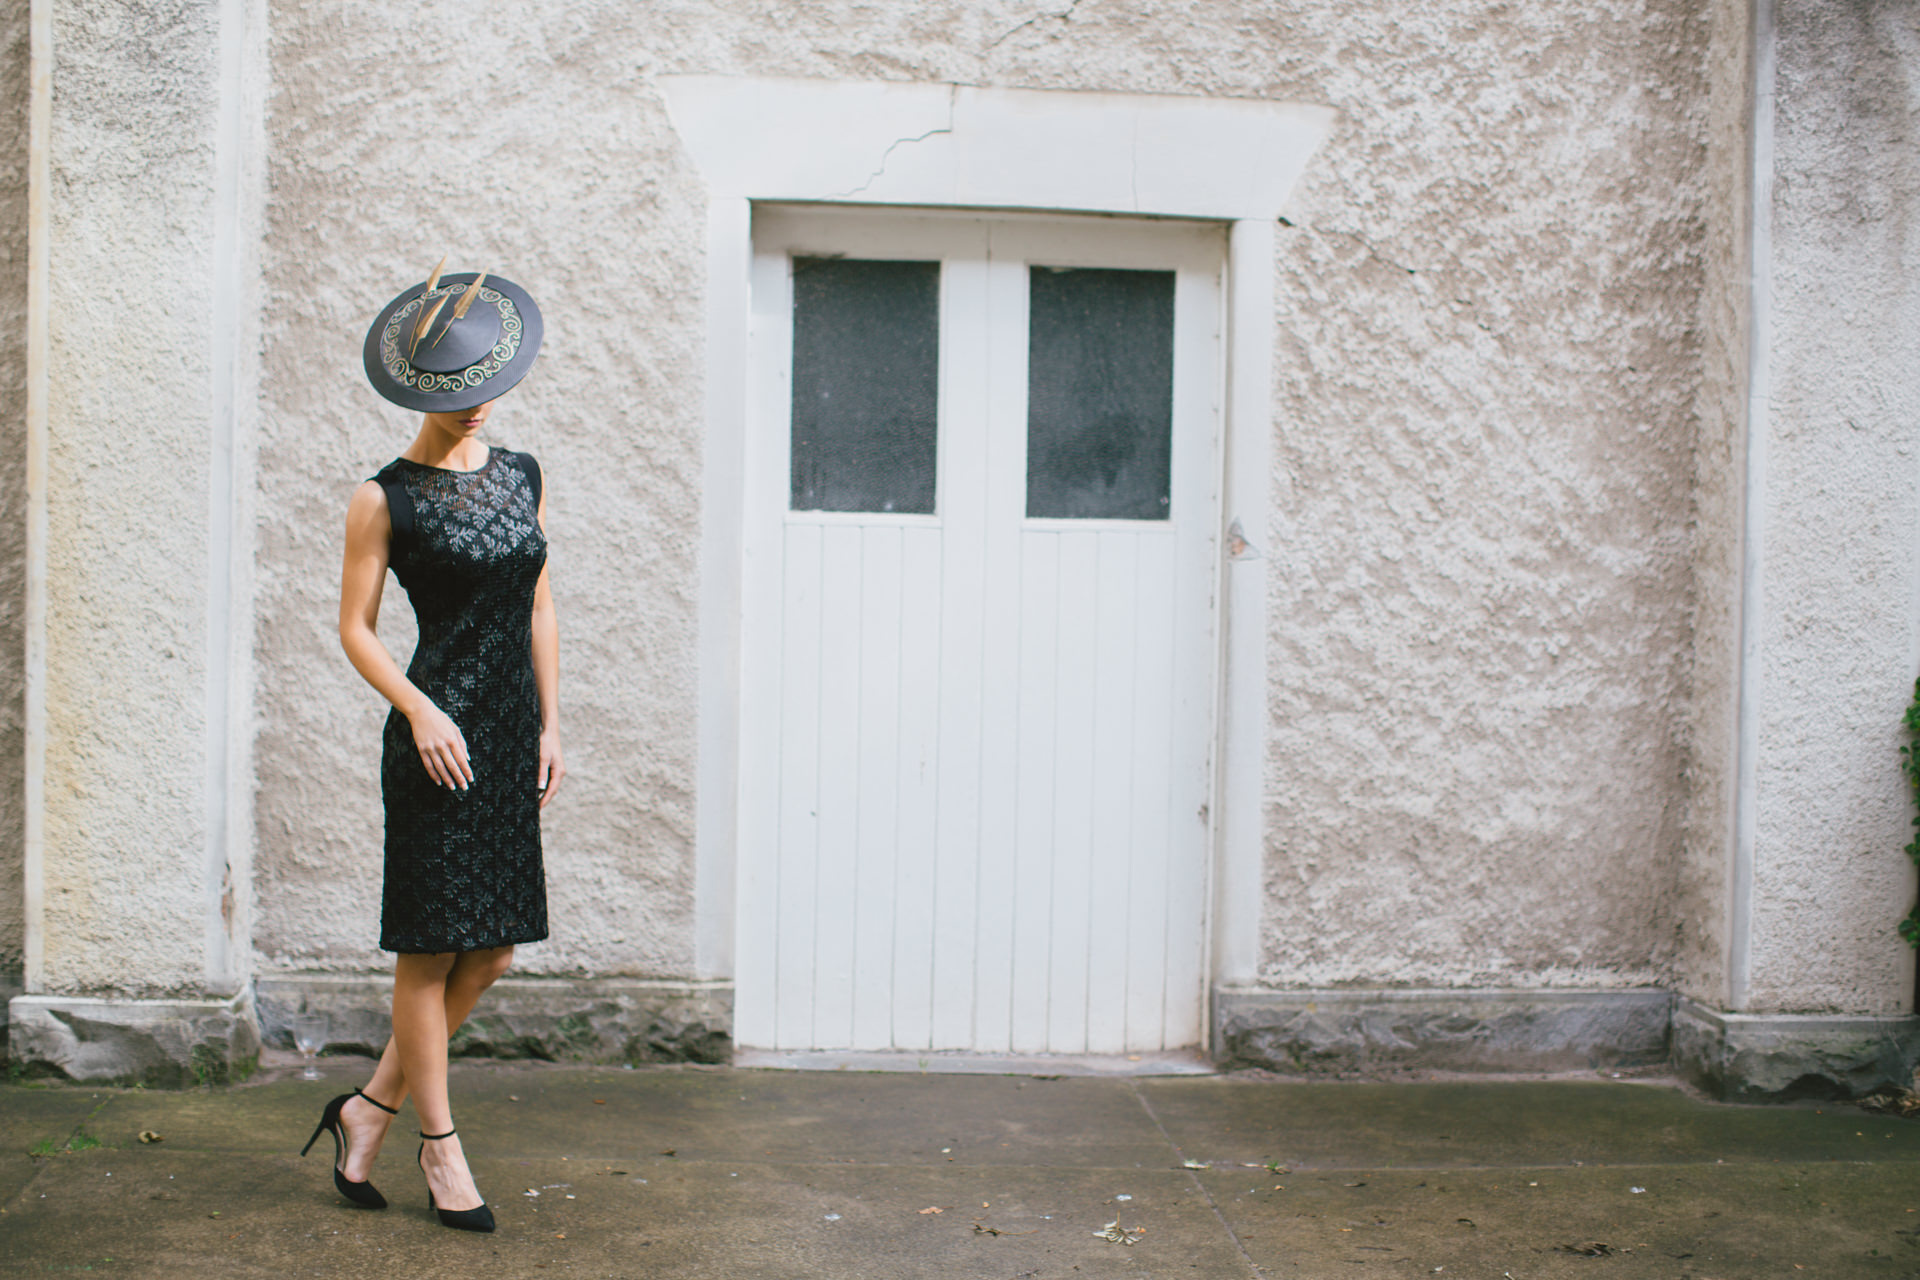 commercial fashion photographer - entry door with girl in racing fashion